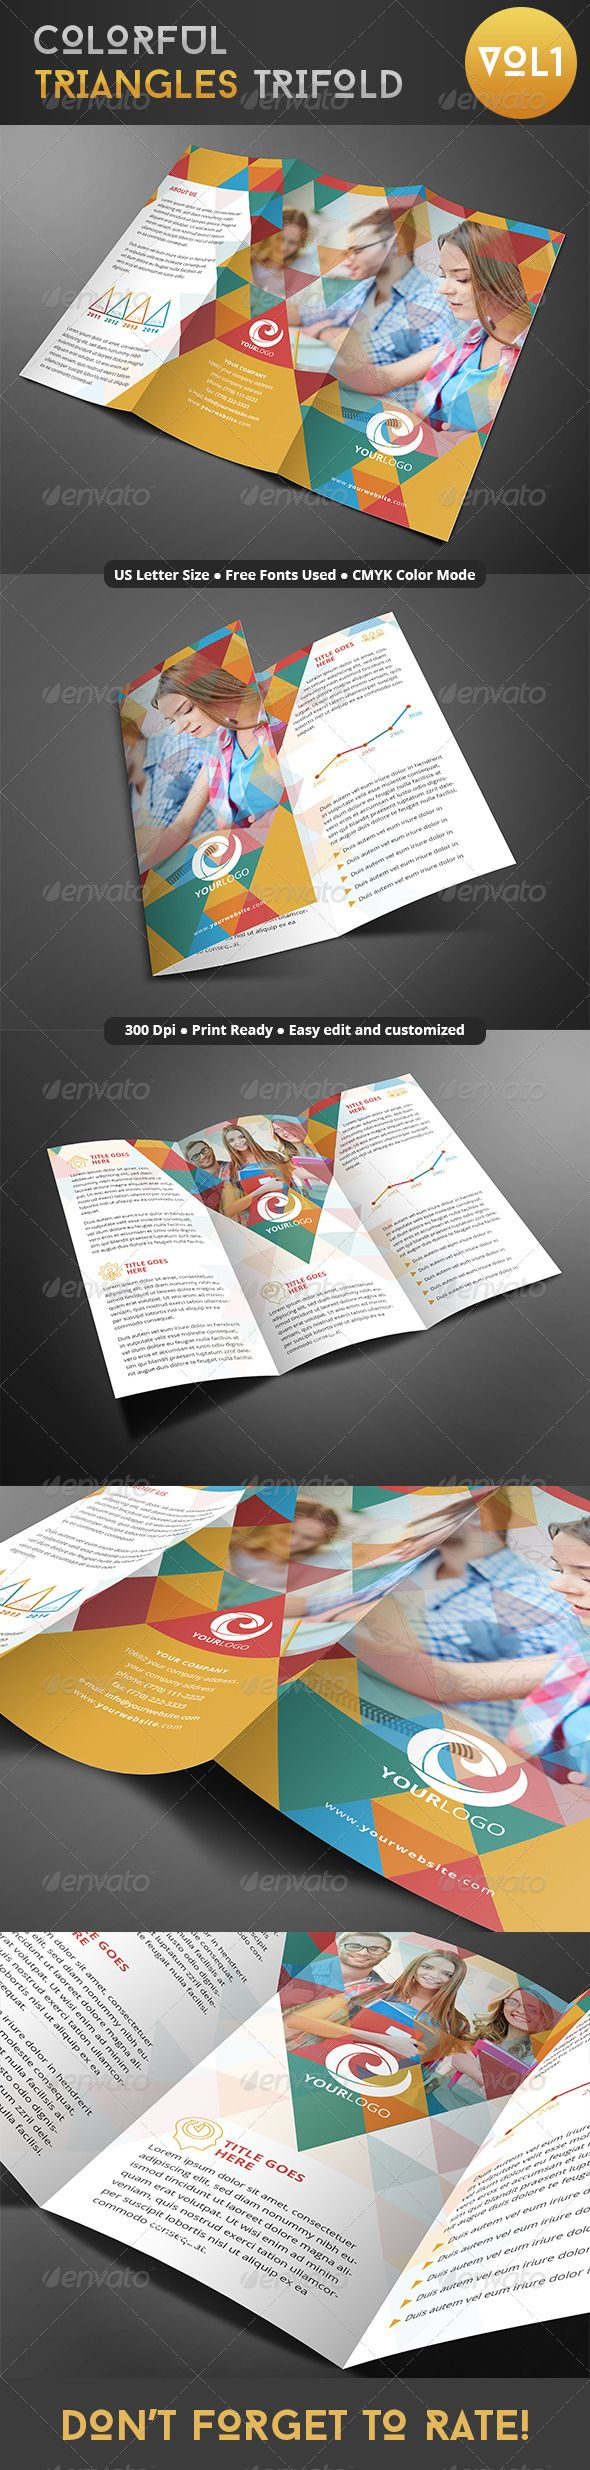 Colorful Triangles Trifold